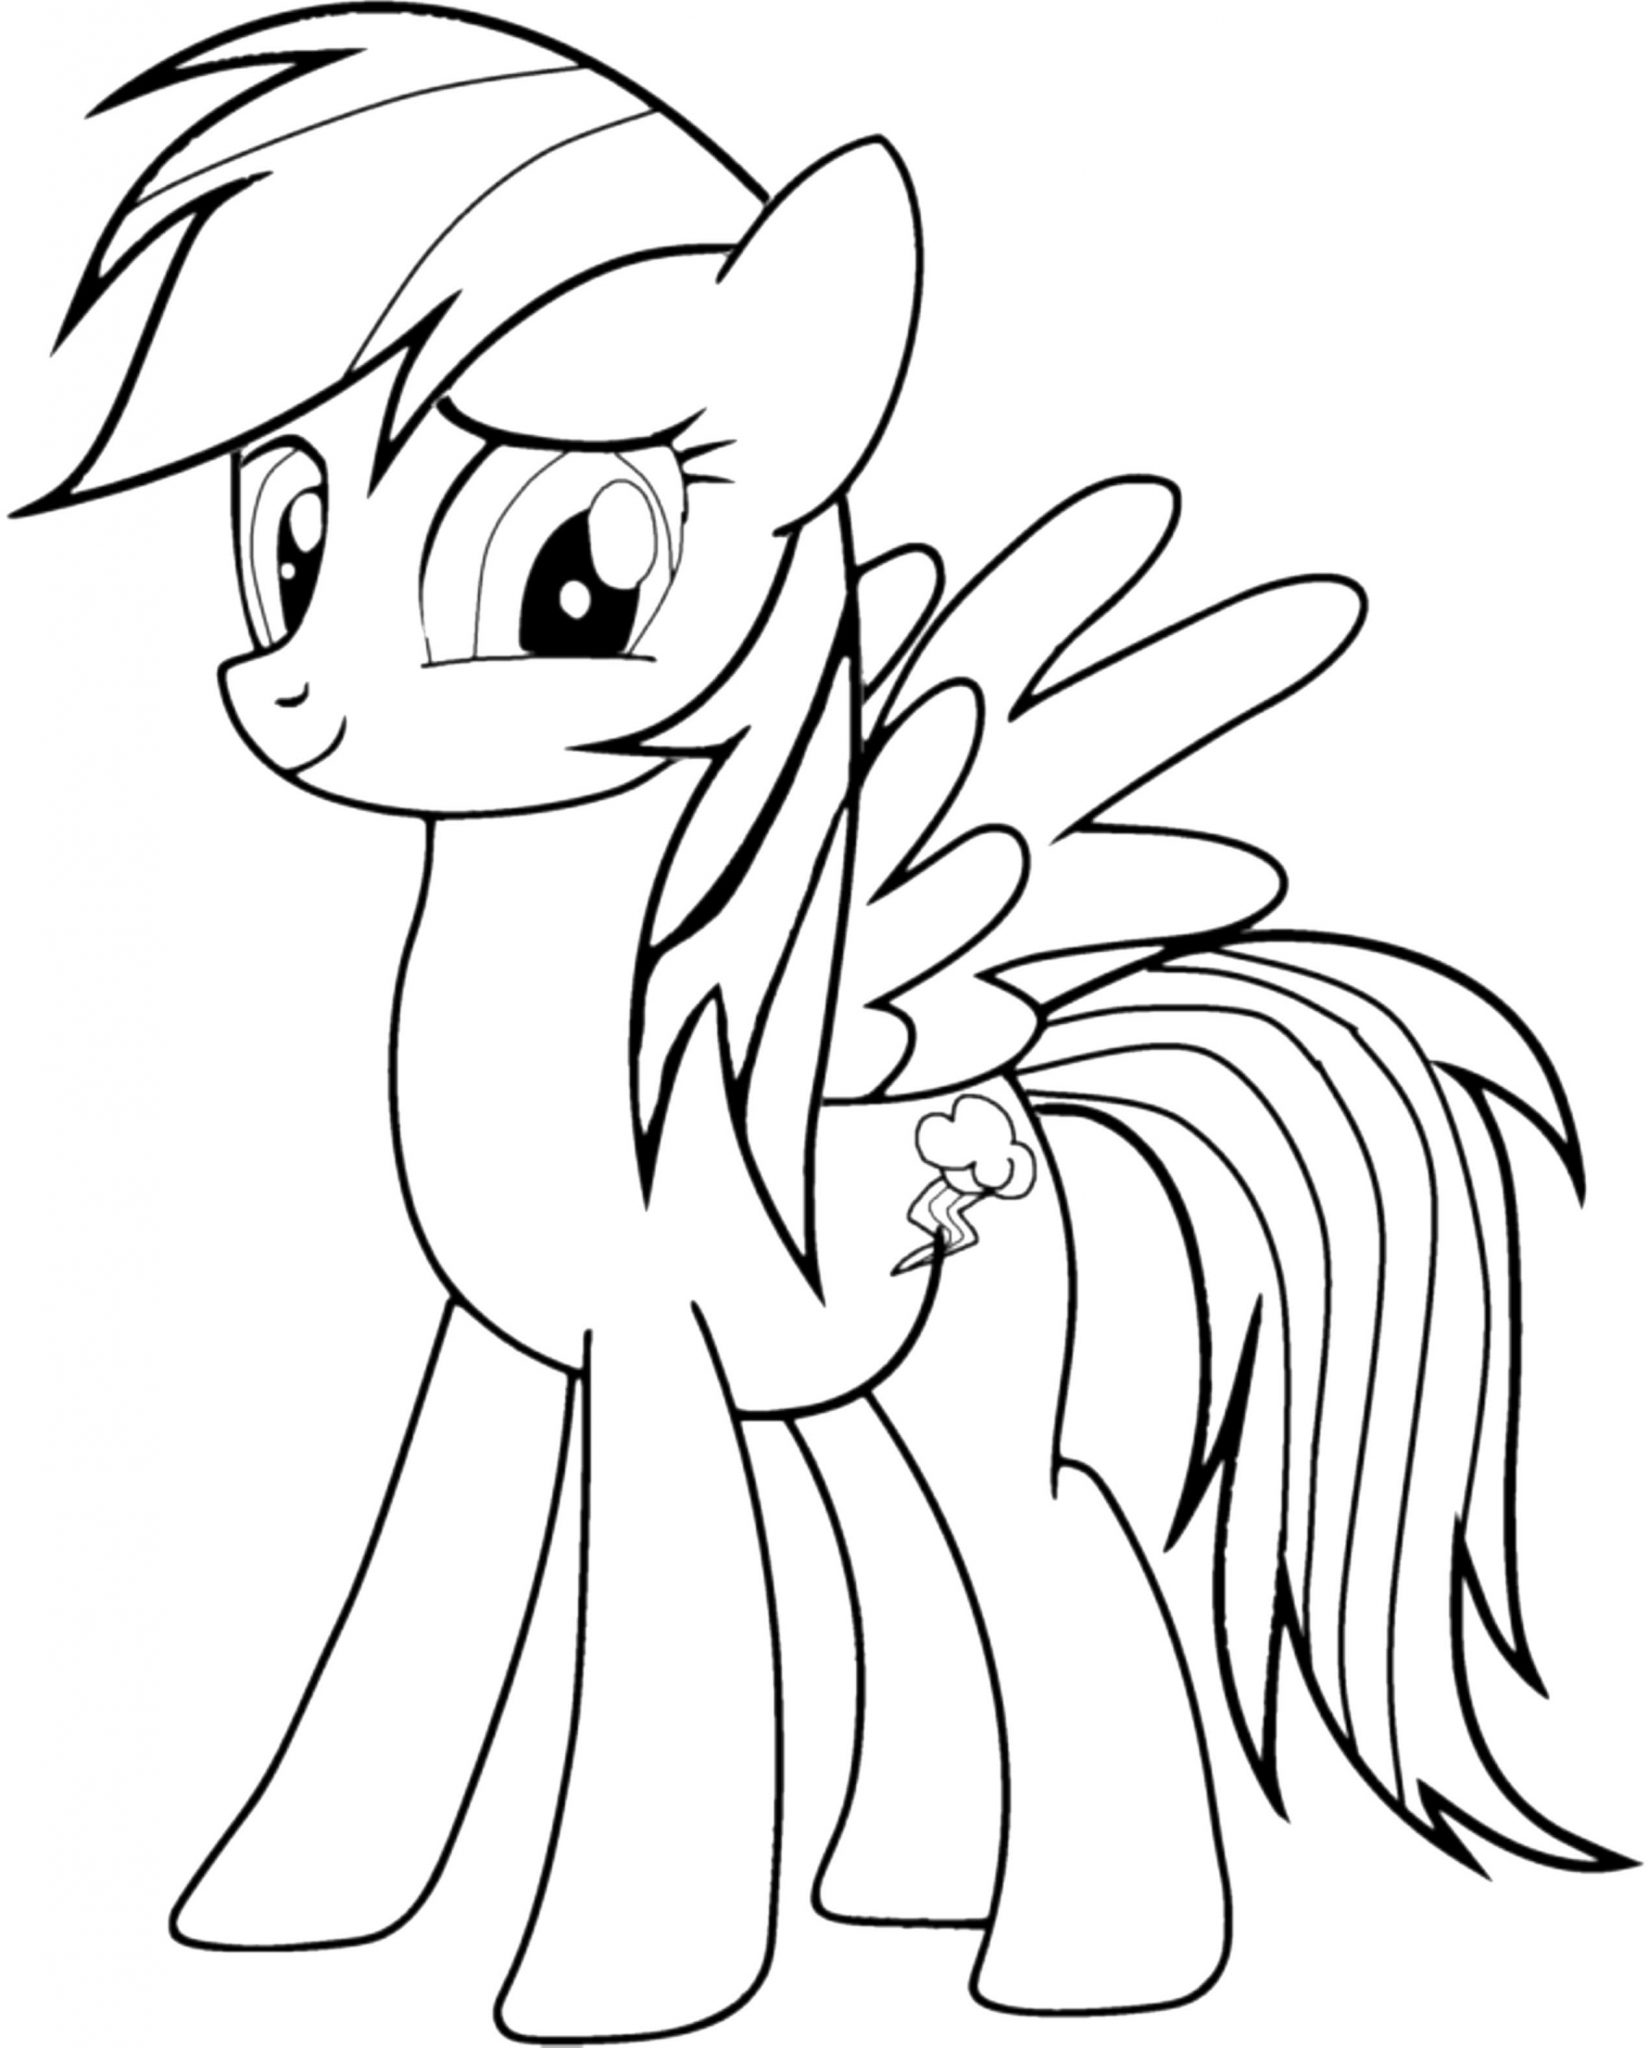 rainbow dash pictures to color rainbow dash coloring pages best coloring pages for kids dash pictures color rainbow to